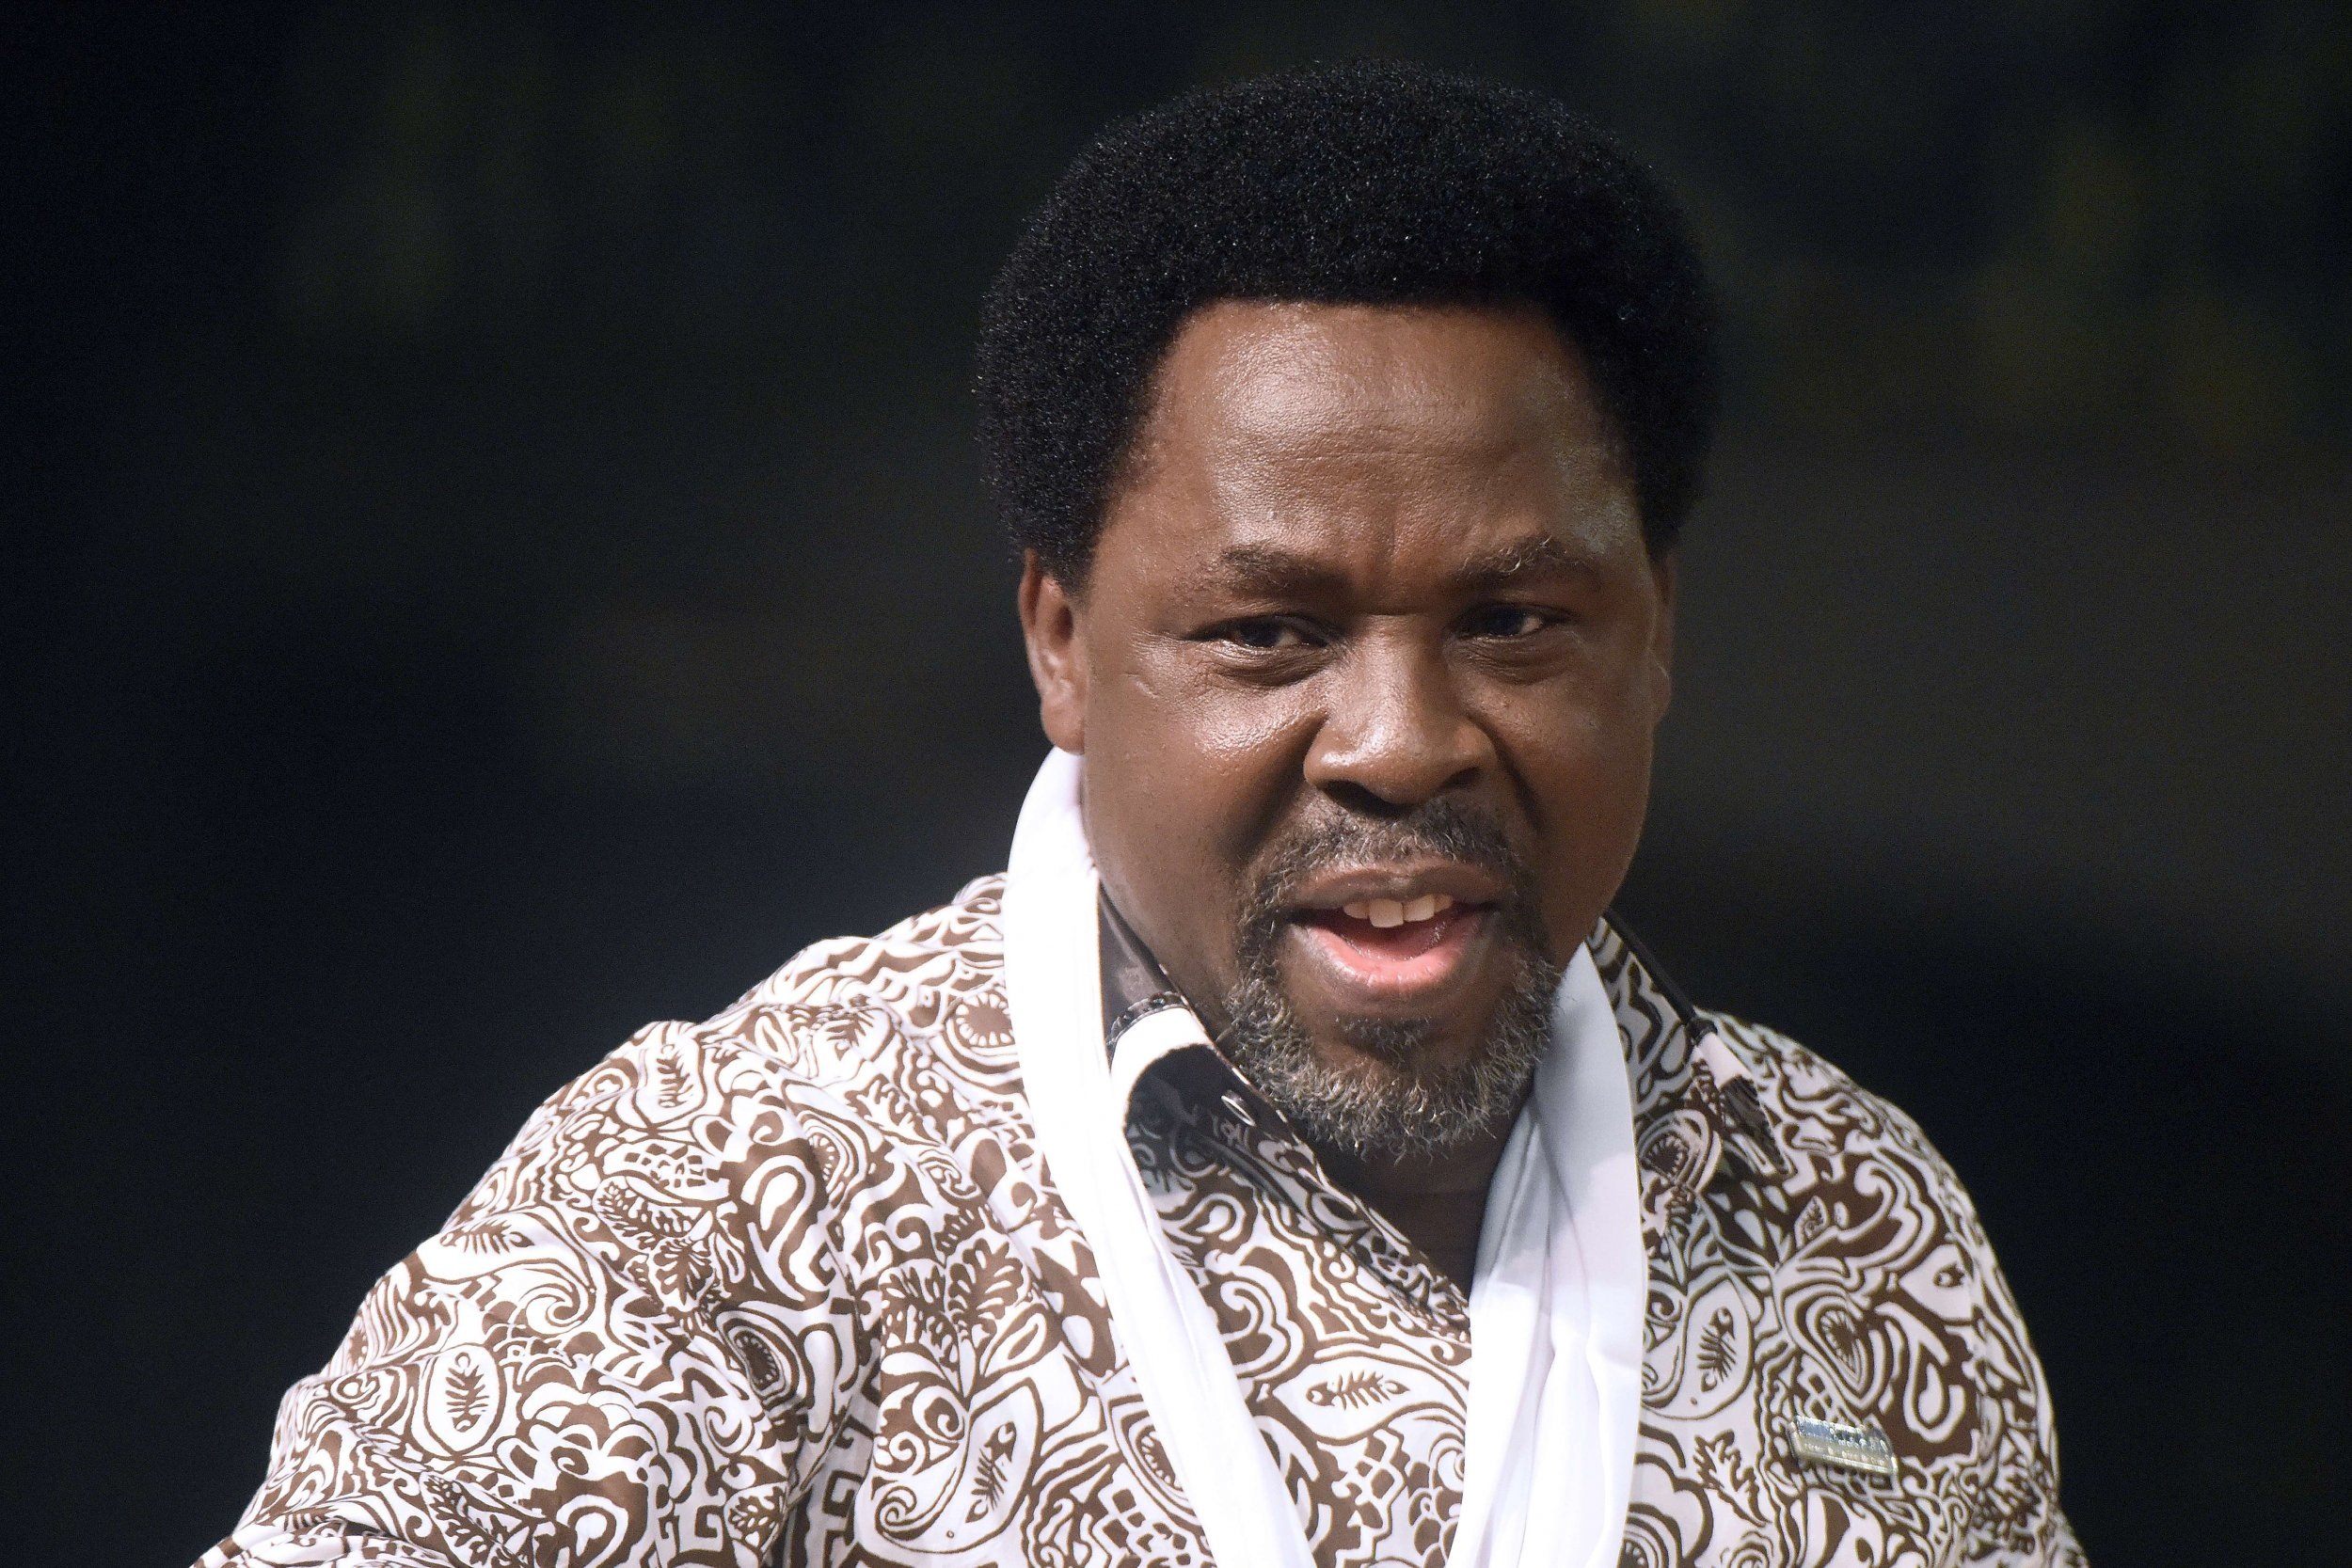 Panama Papers: Nigerian Preacher TB Joshua Denies Offshore Activity